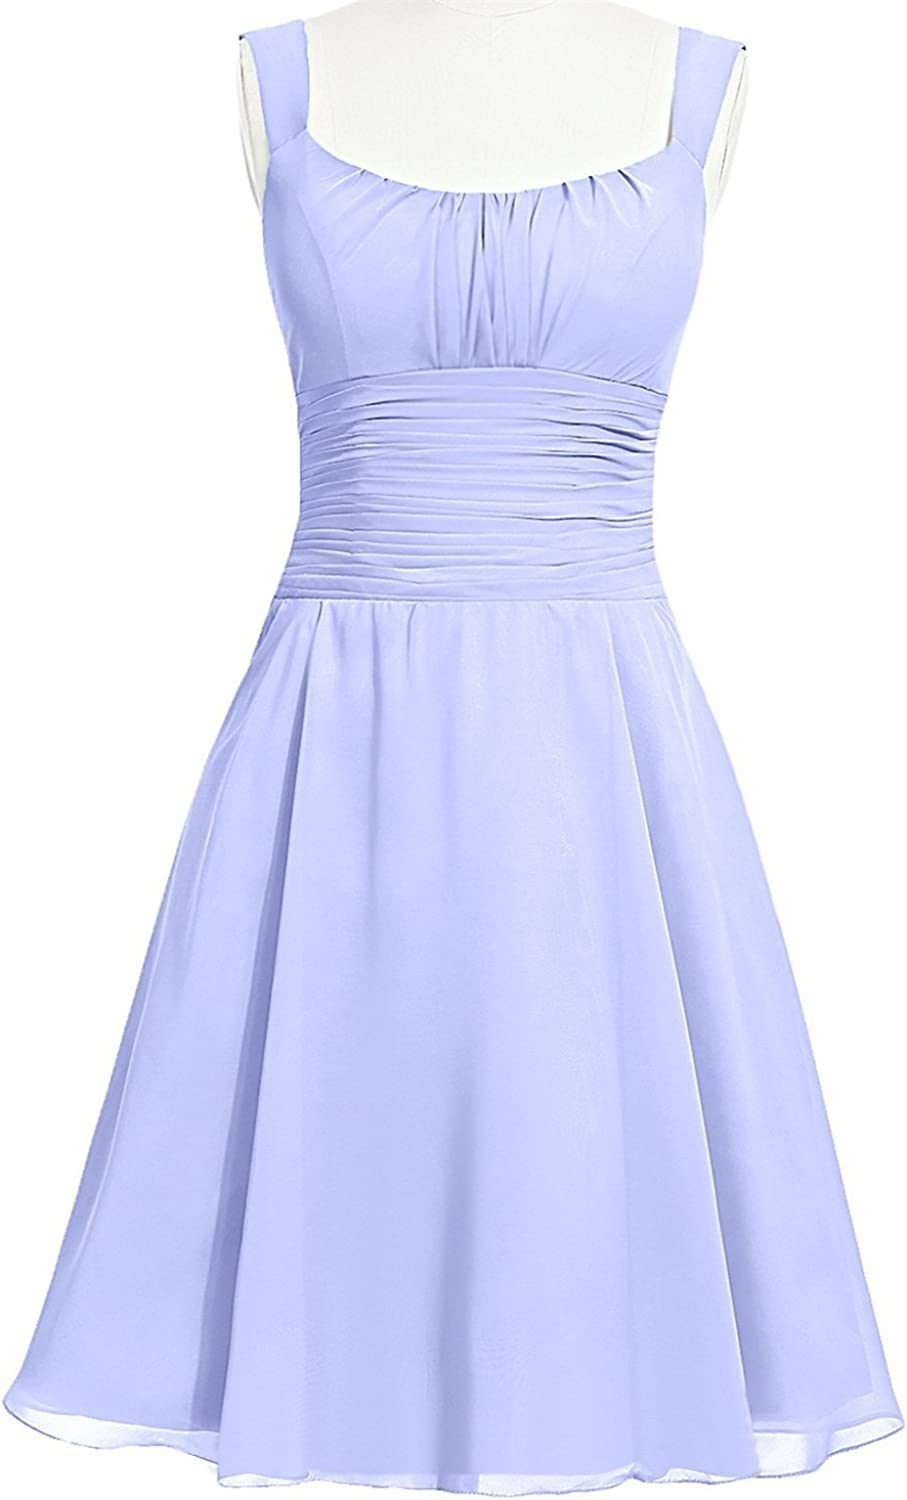 MittyDressesWomens Evening Homecoming Prom Party Cocktail Dress Size 2 US Lavender